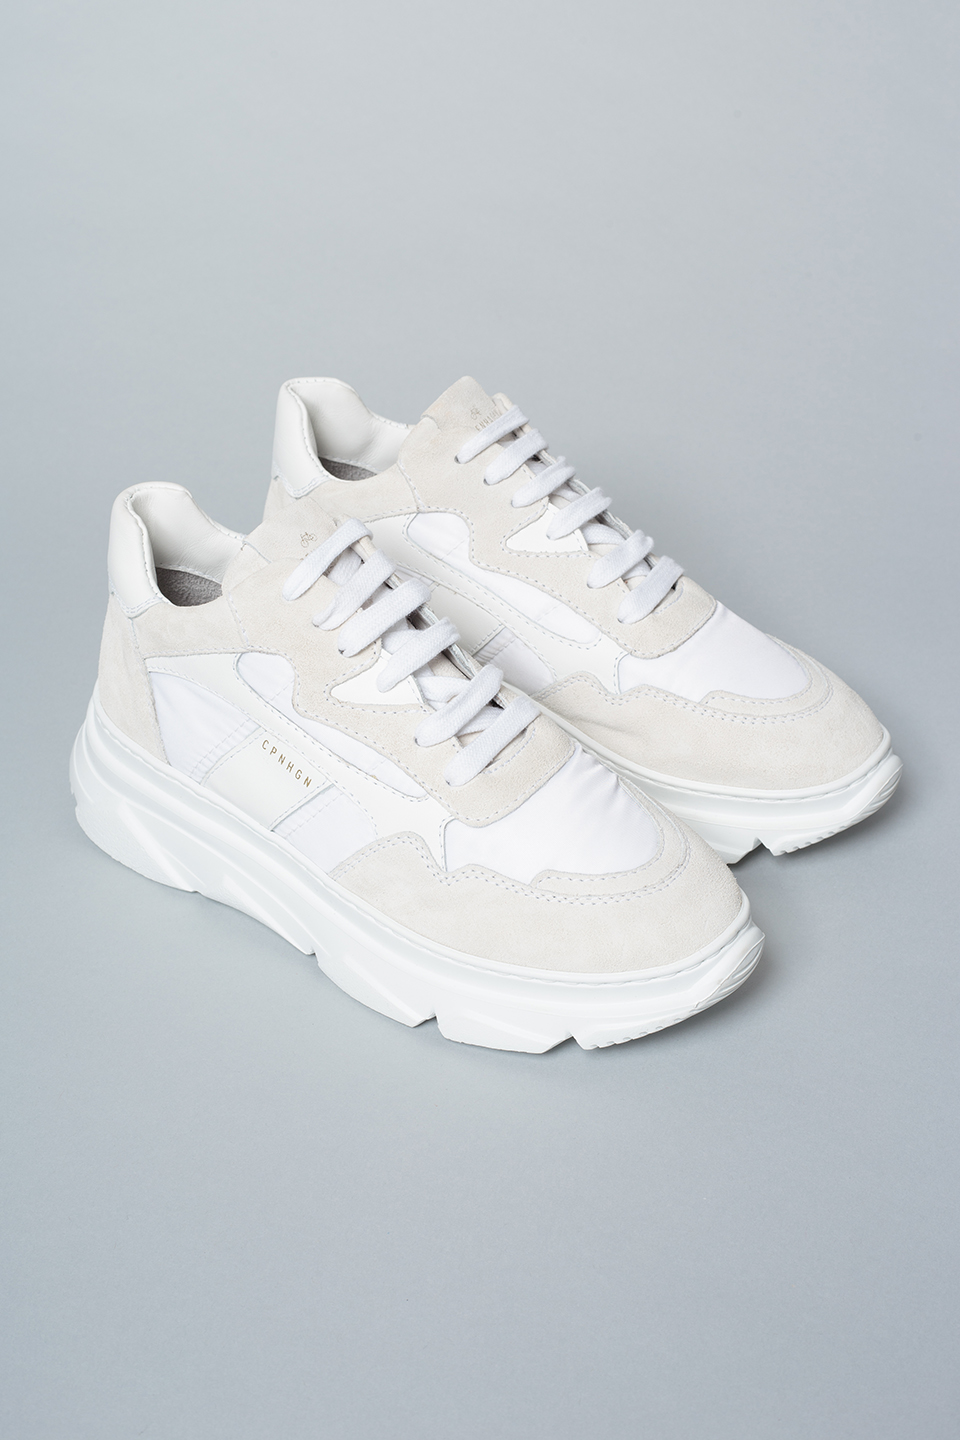 CPH51 material mix white